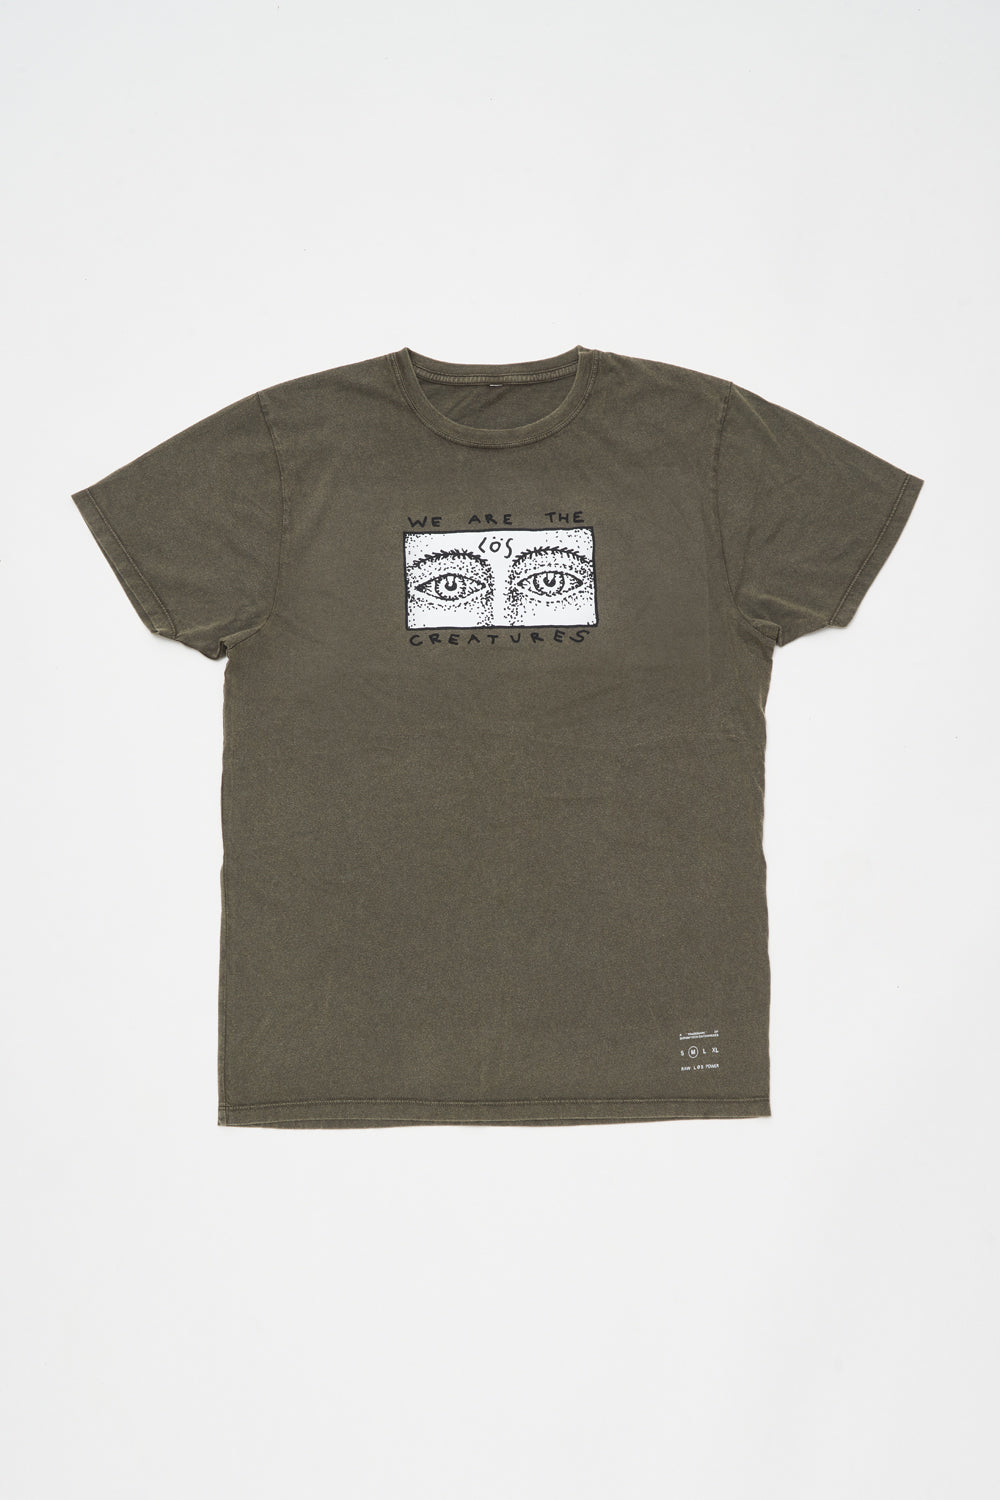 CREATURES T-SHIRT / STONE WASH GREY